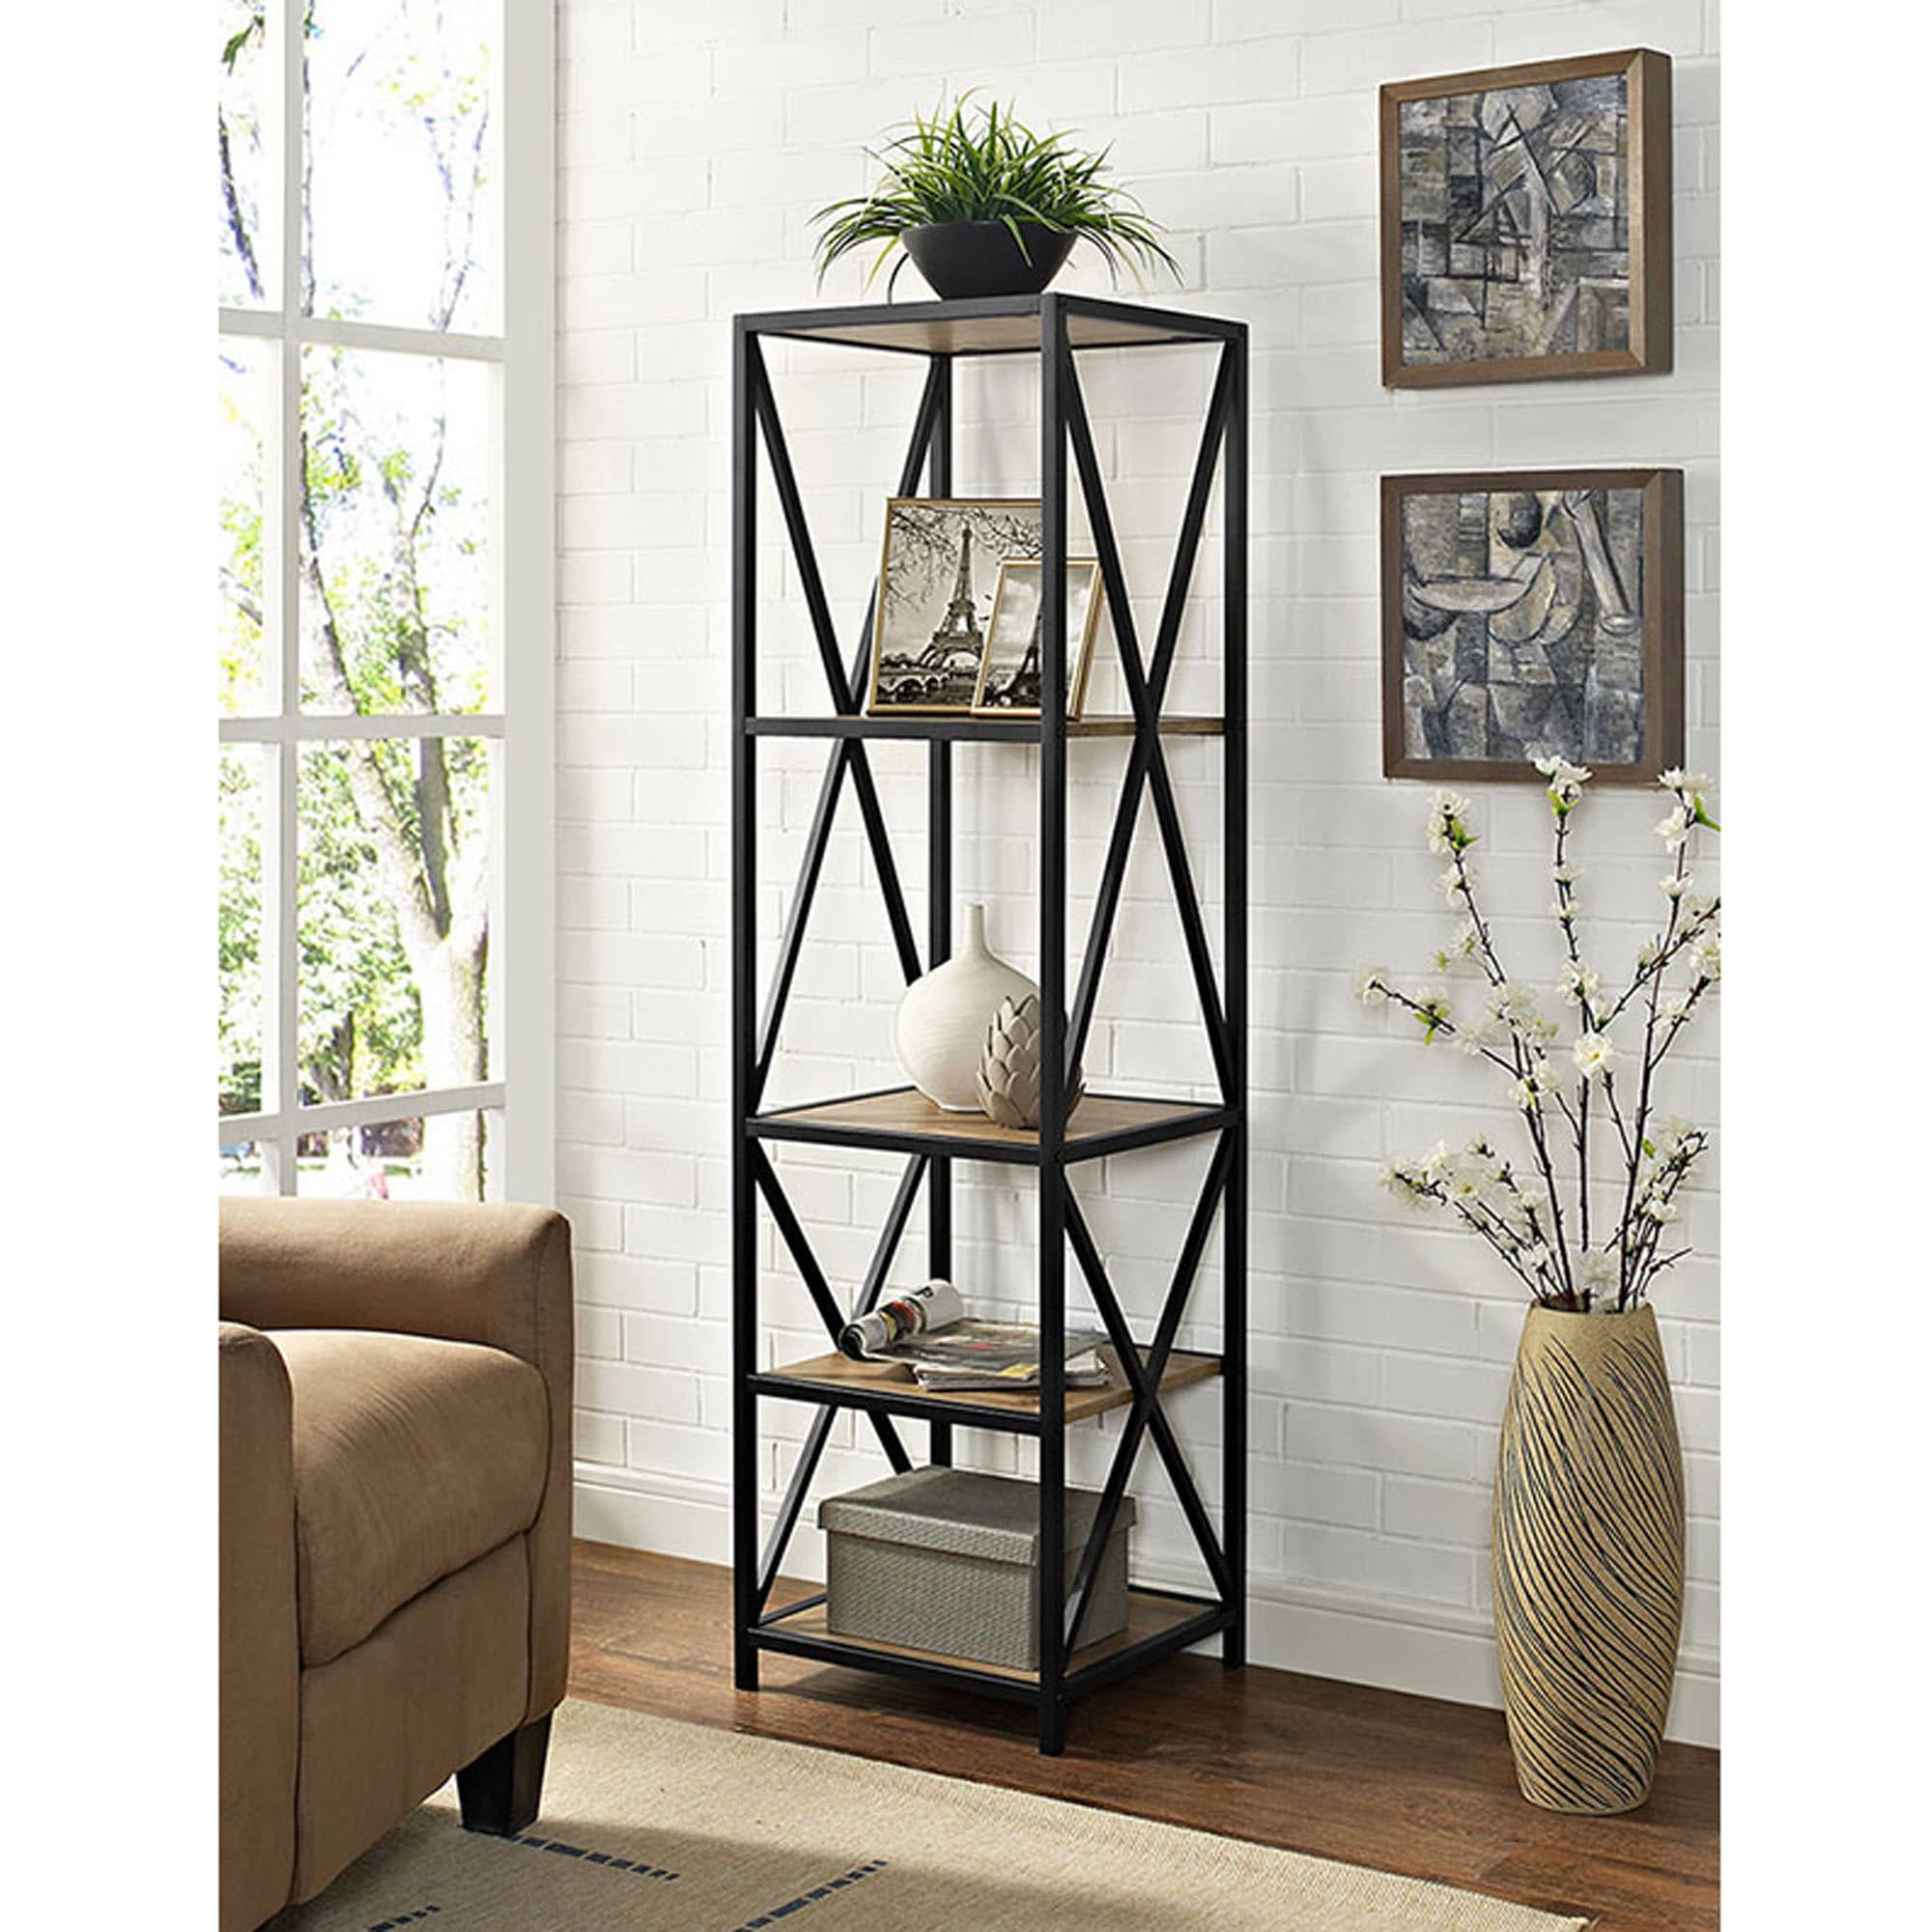 books unit shelving organizer build wall canada simple storage and shelves wood glamorous shelf rack decorating inch amazon bookshelf containers closet wide plus also to walmart units a beautiful how metal for